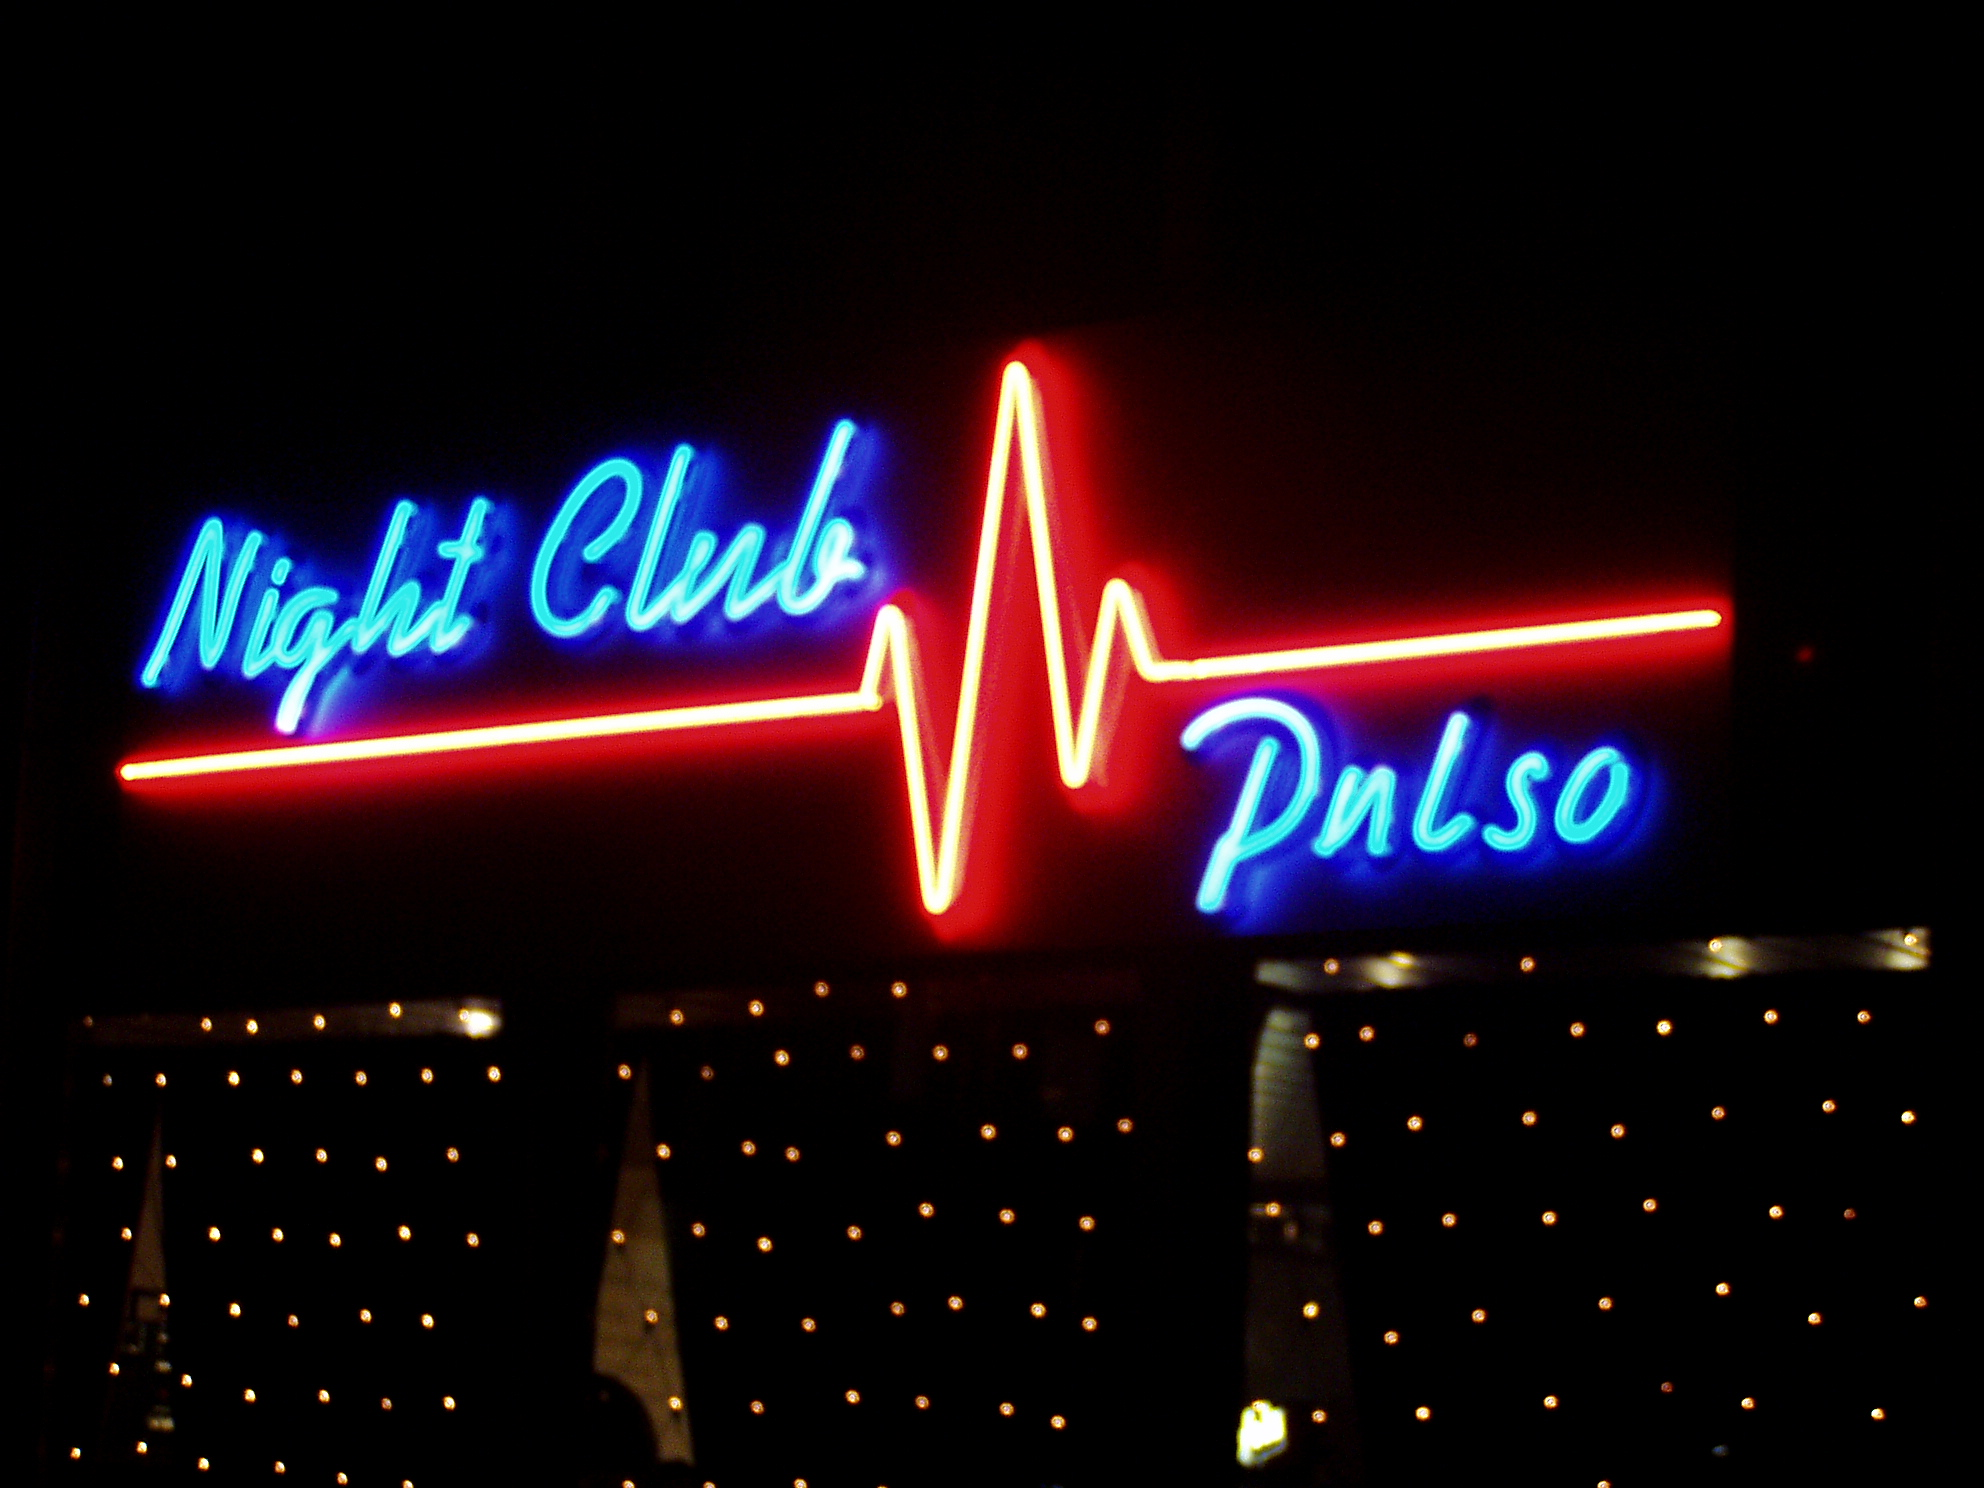 NIGHT CLUB PULSO